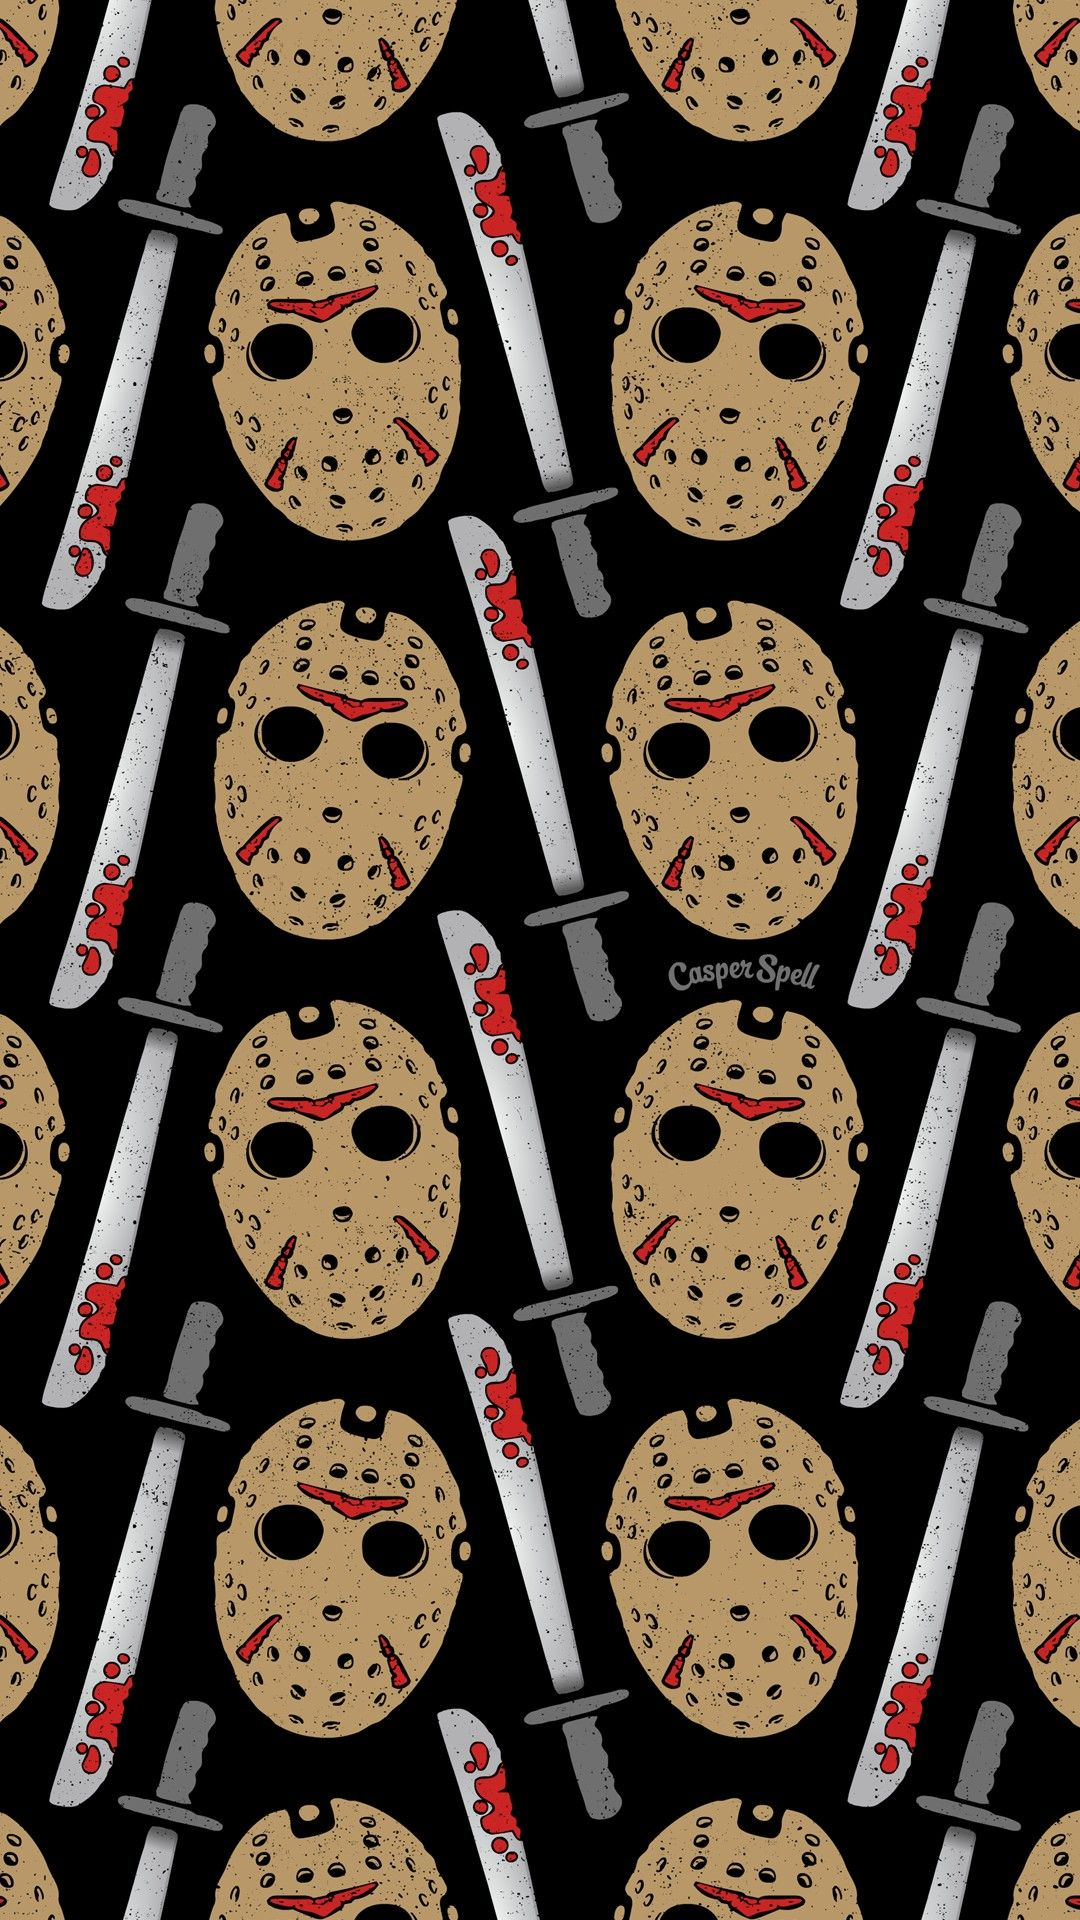 Friday The 13th Jason Voorhees Repeat Pattern Art Surface